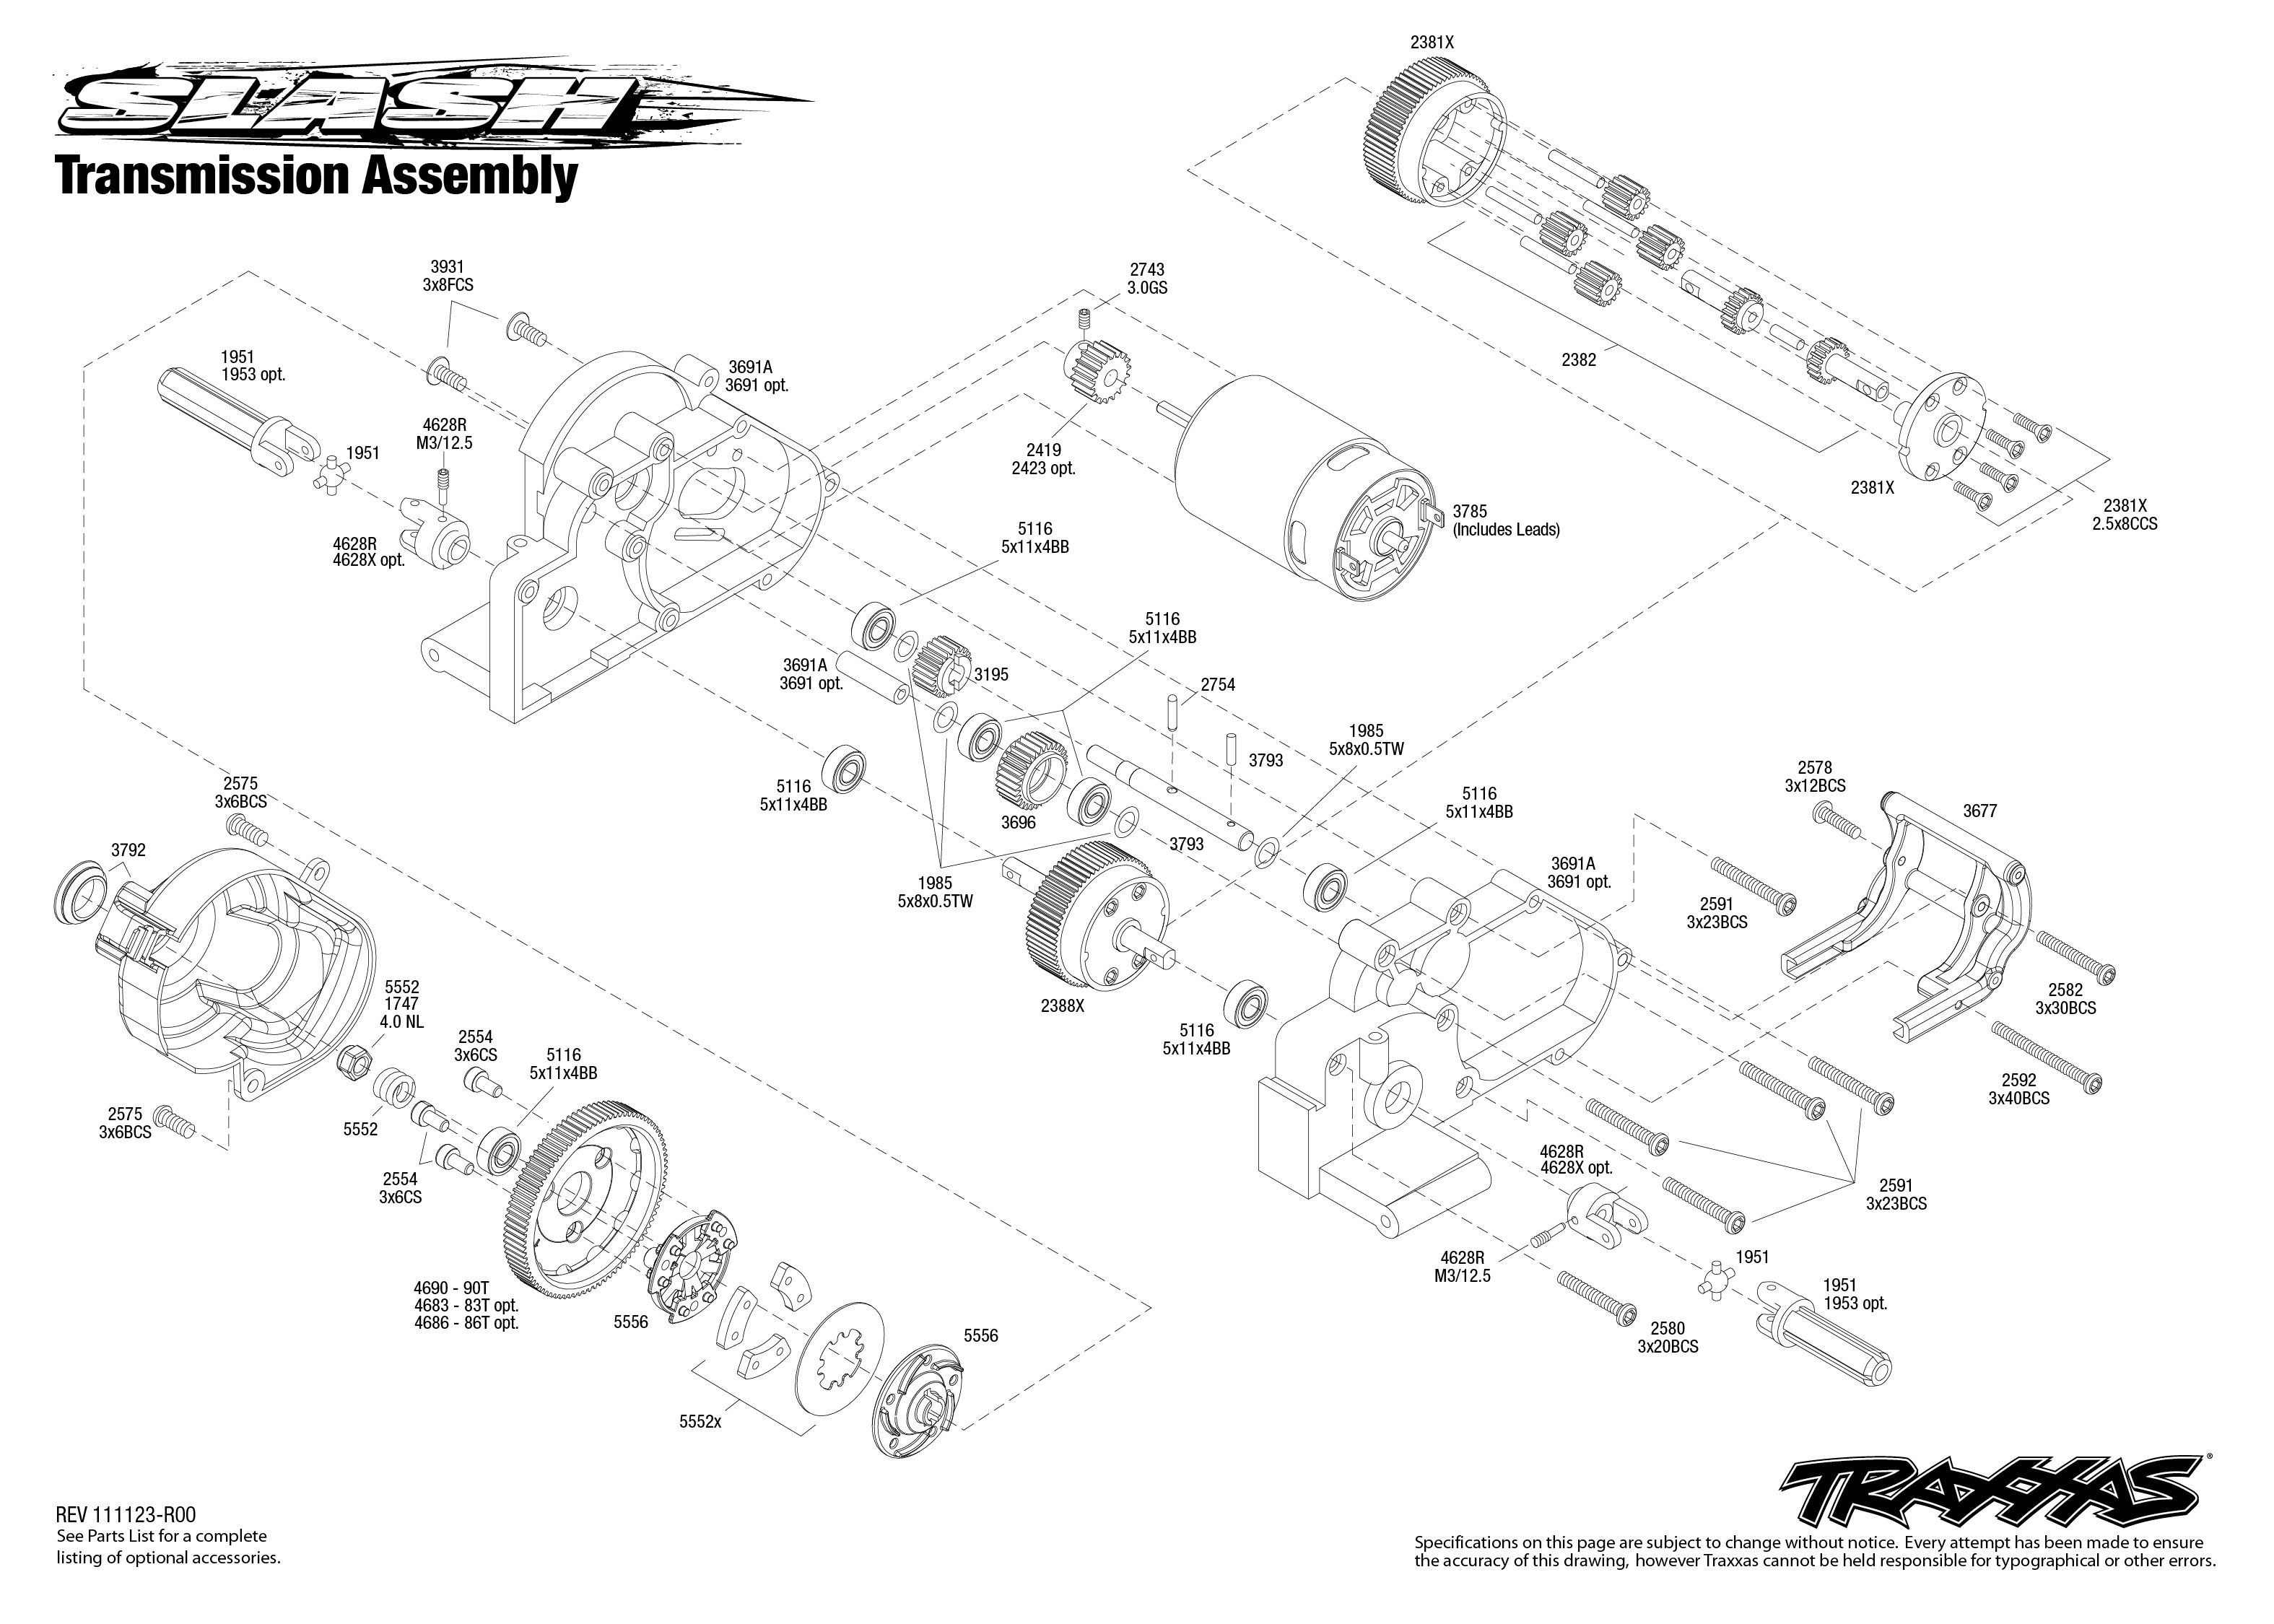 5803 transmission exploded view  slash  with tqi 2 4ghz radio  traxxas traxxas slash 2wd parts exploded view traxxas slash 2wd parts list